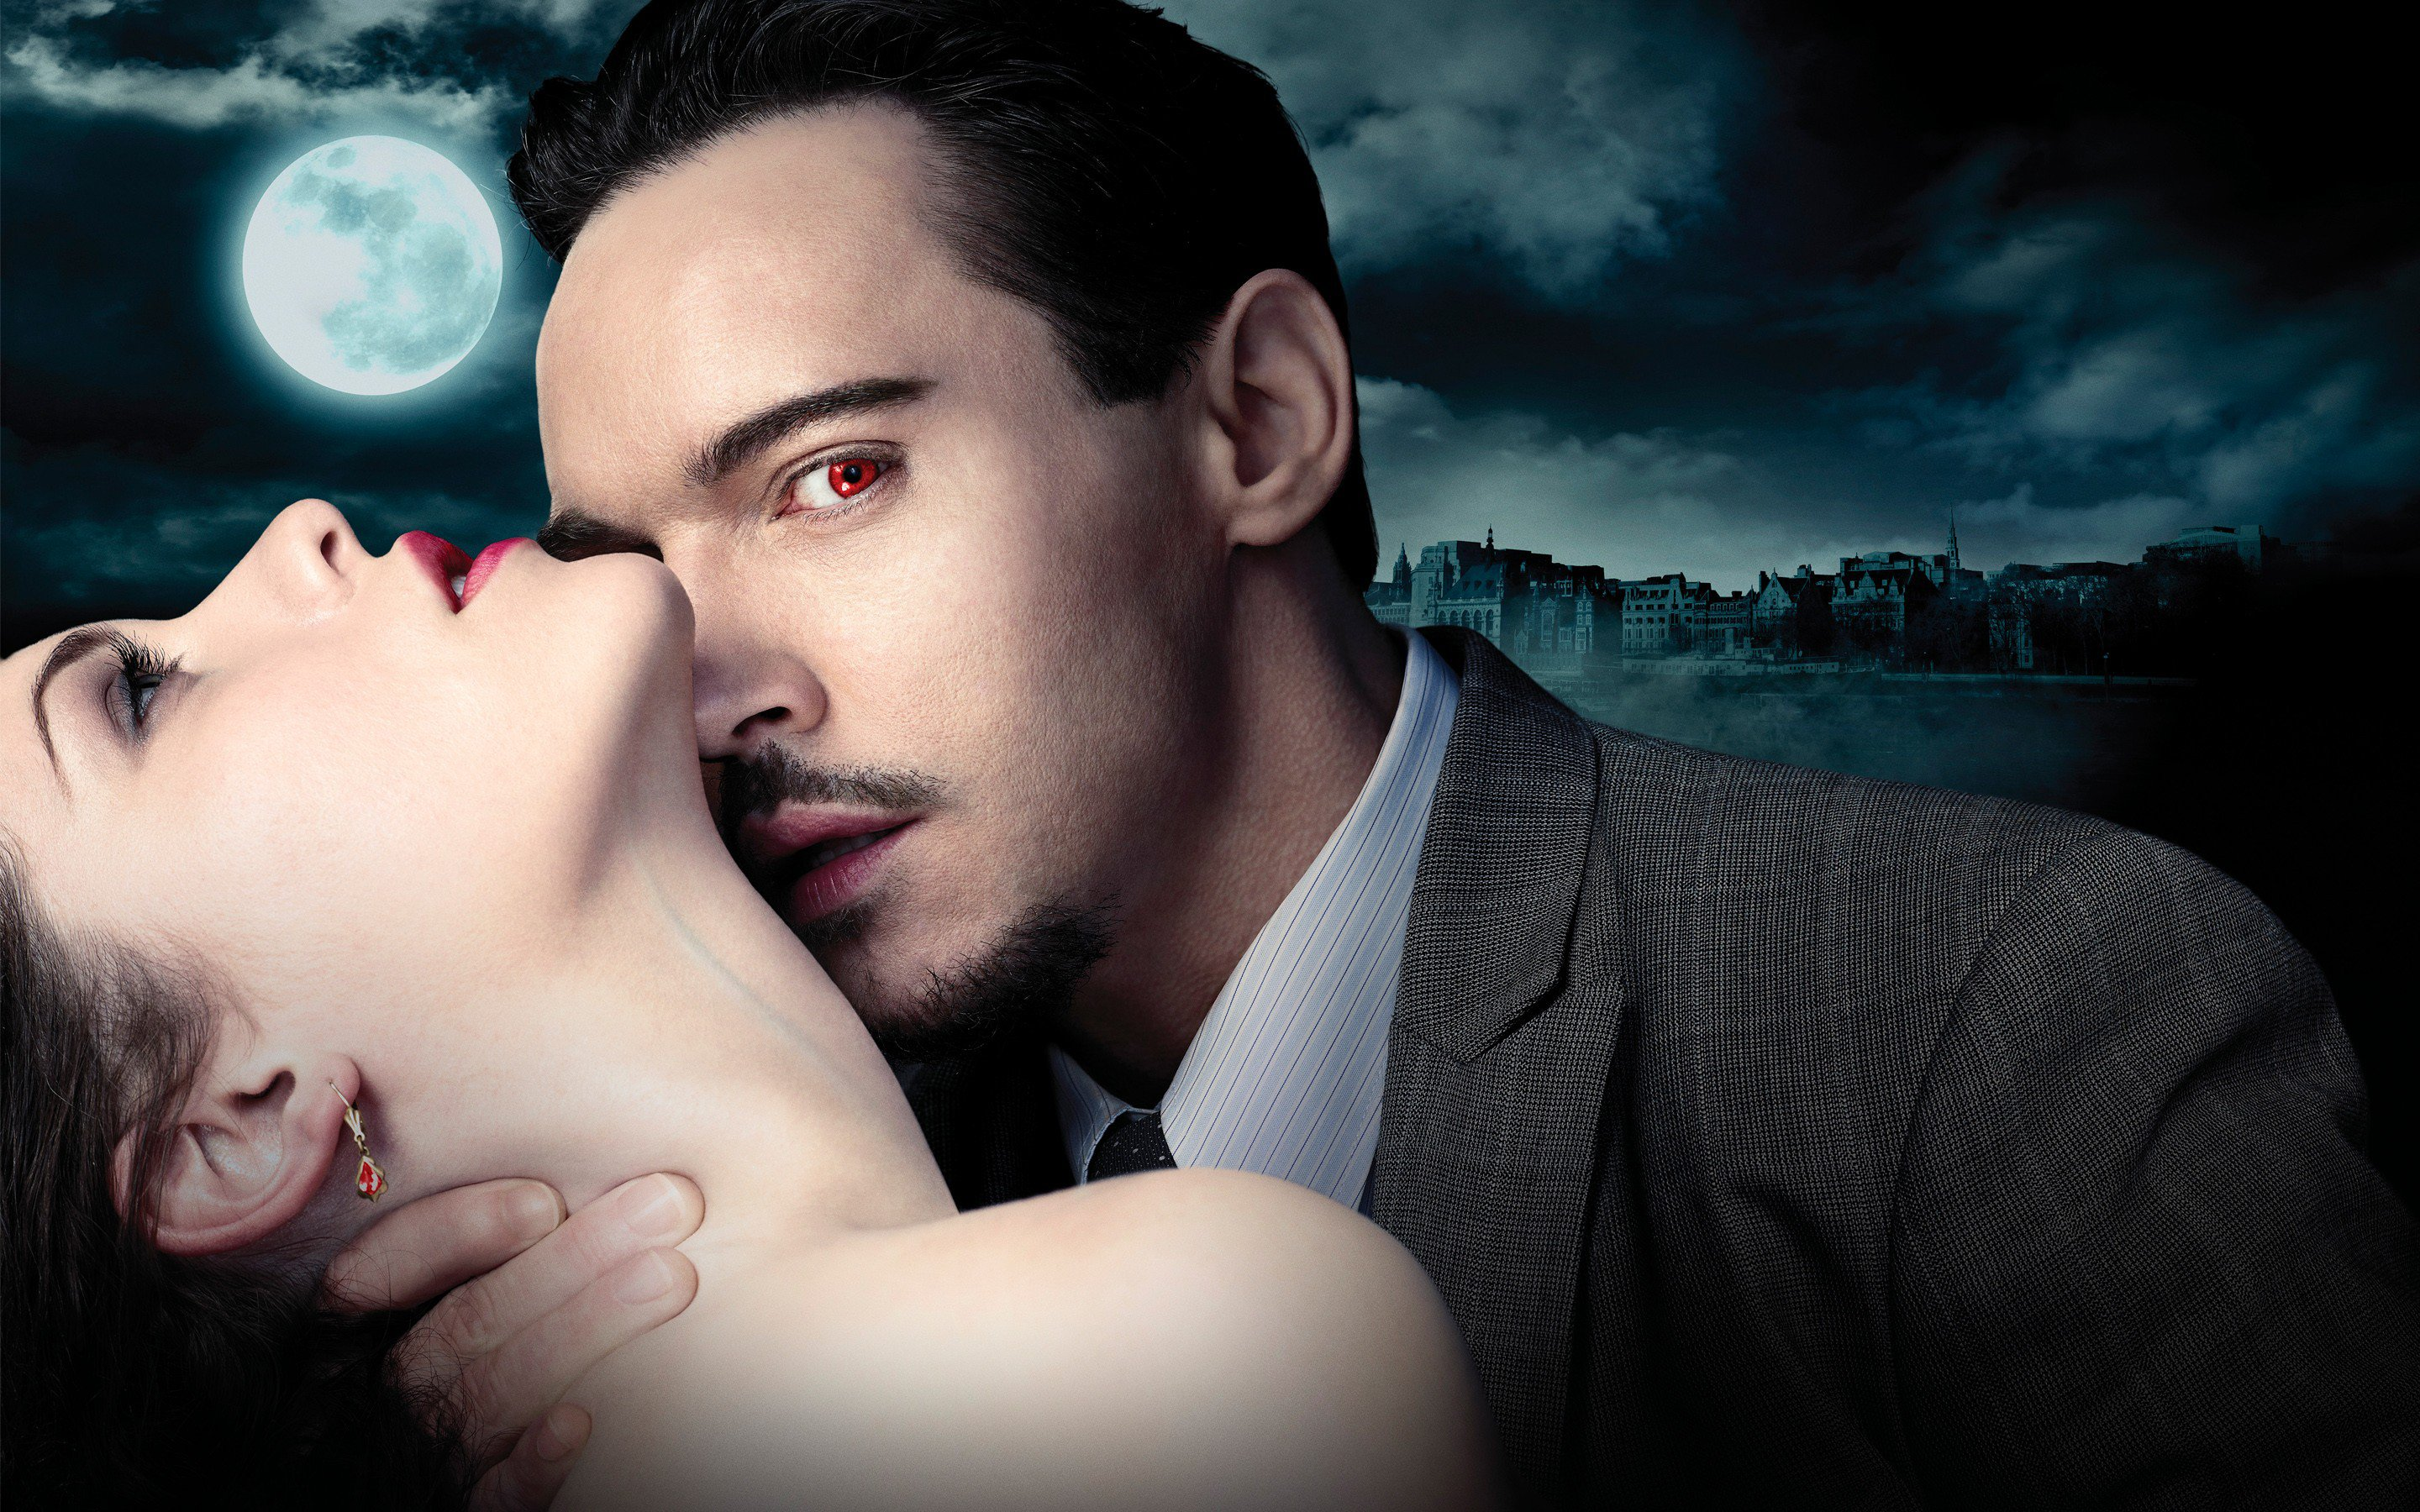 dracula hd wallpapers - photo #21